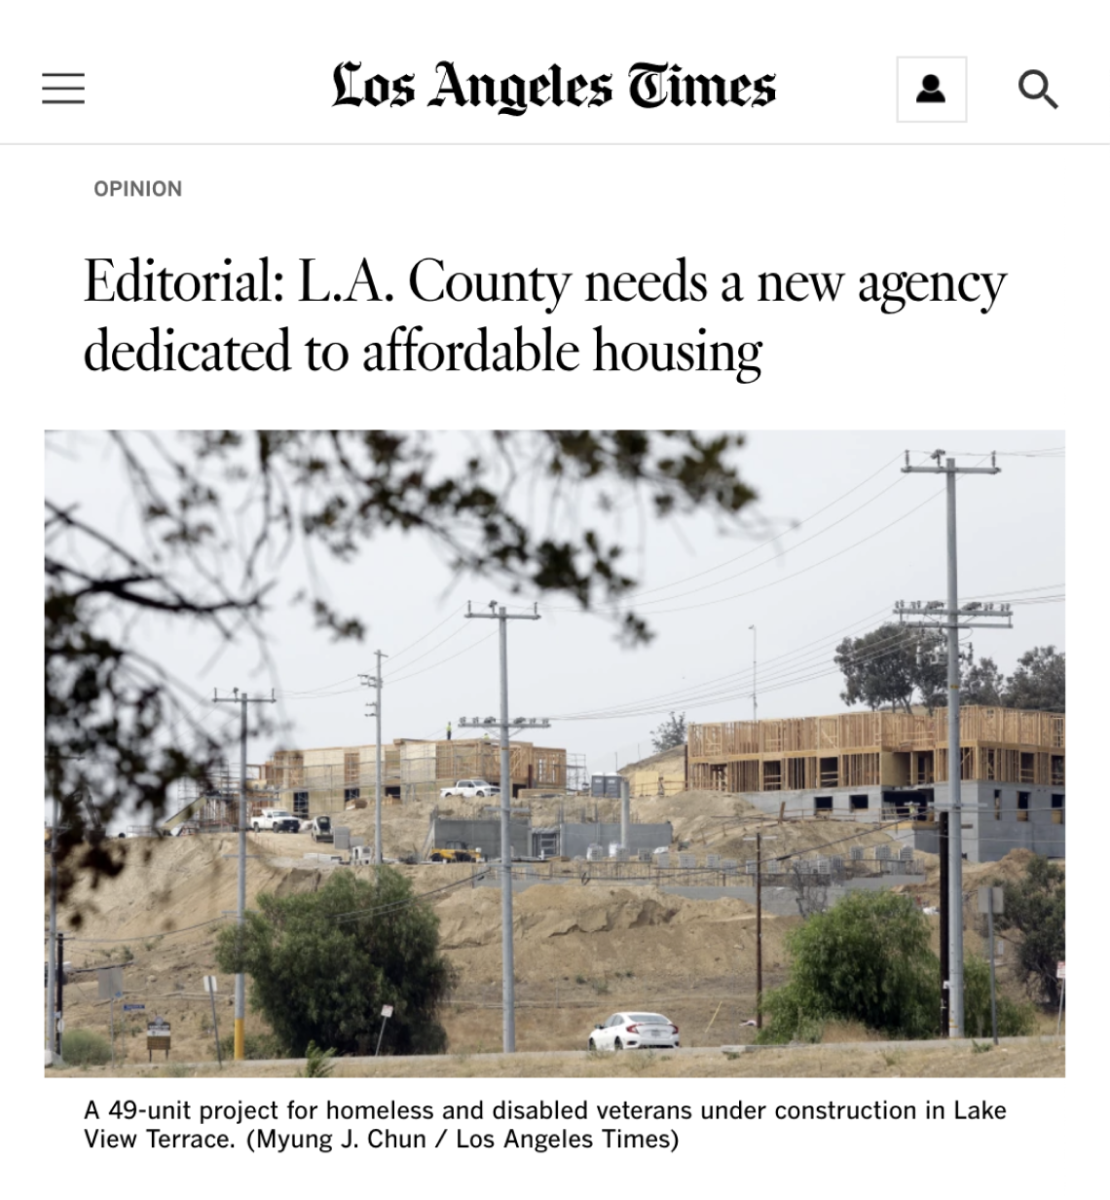 LA Times - L.A. County needs a new agency dedicated to affordable housing